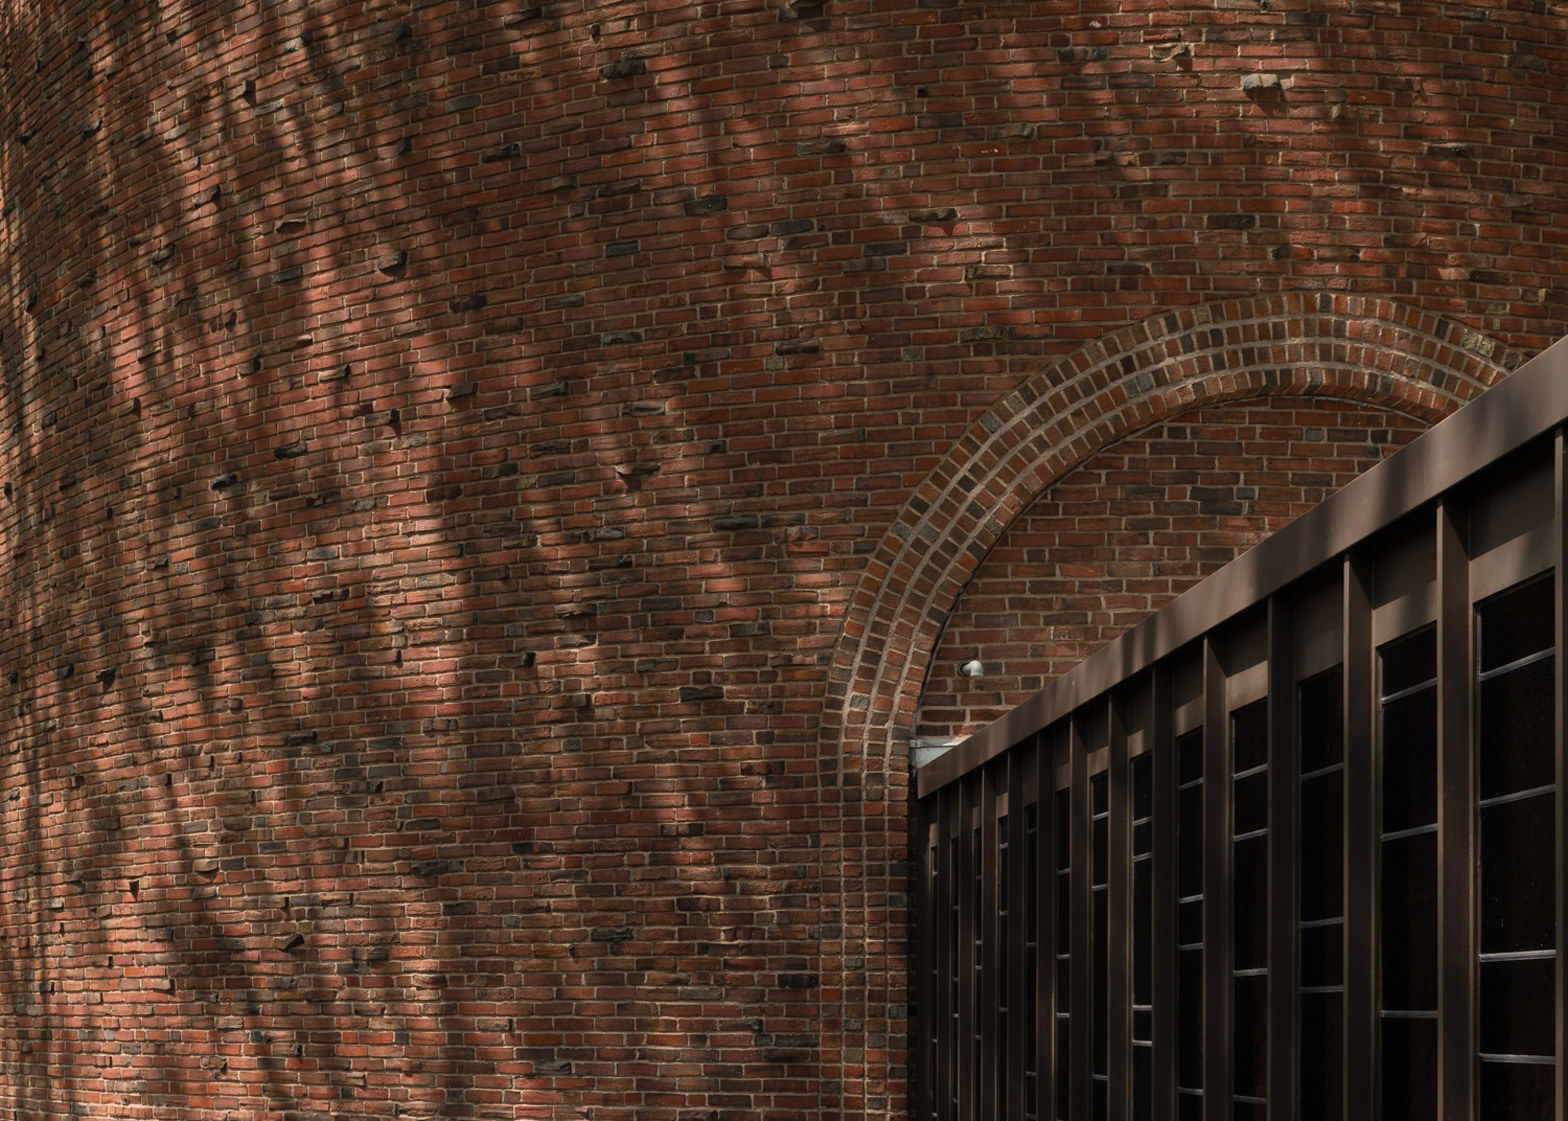 Jim Stephenson photographs Eero Saarinen's MIT Chapel